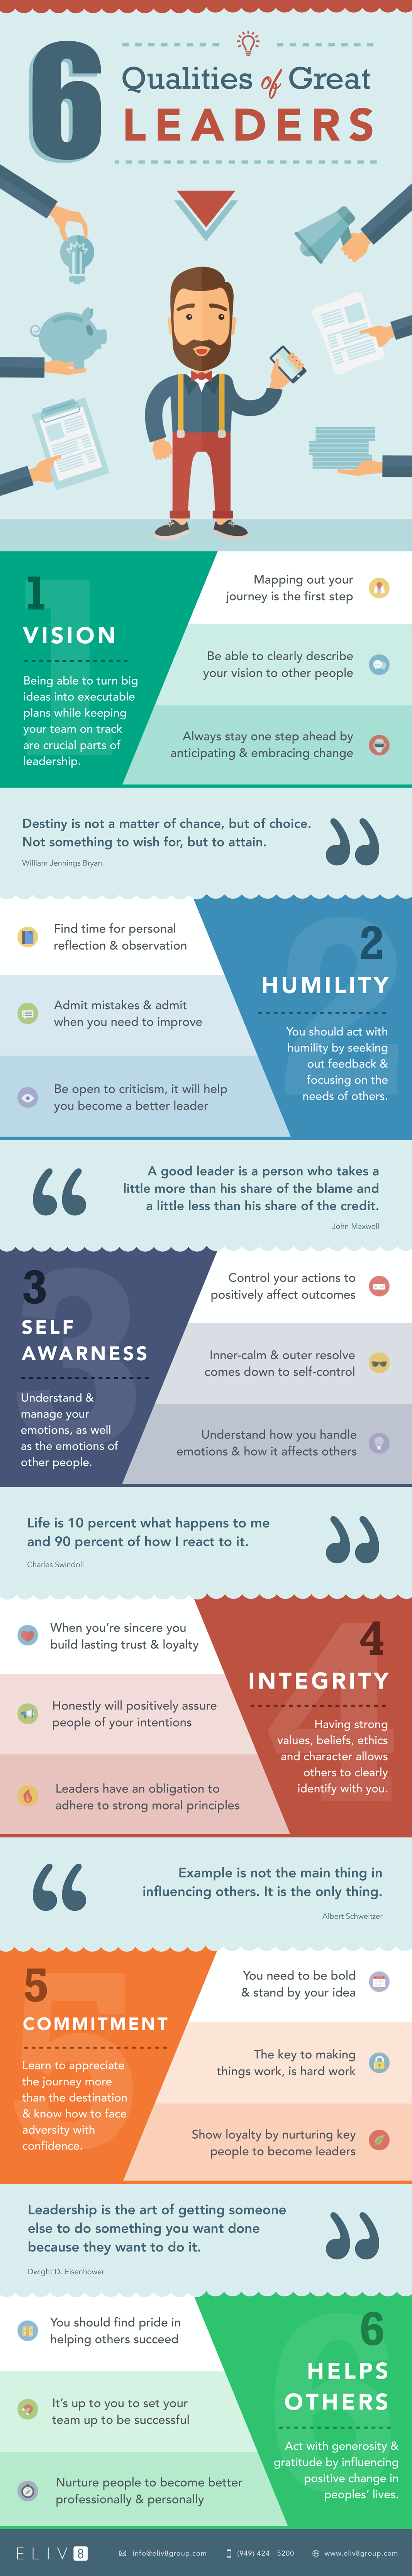 top 6 qualities of great leaders infographic head to sons qualities of a leader leadership characteristics 6 qualities leadership traits leadership ideas leadership quotes leadership general fresh leadership